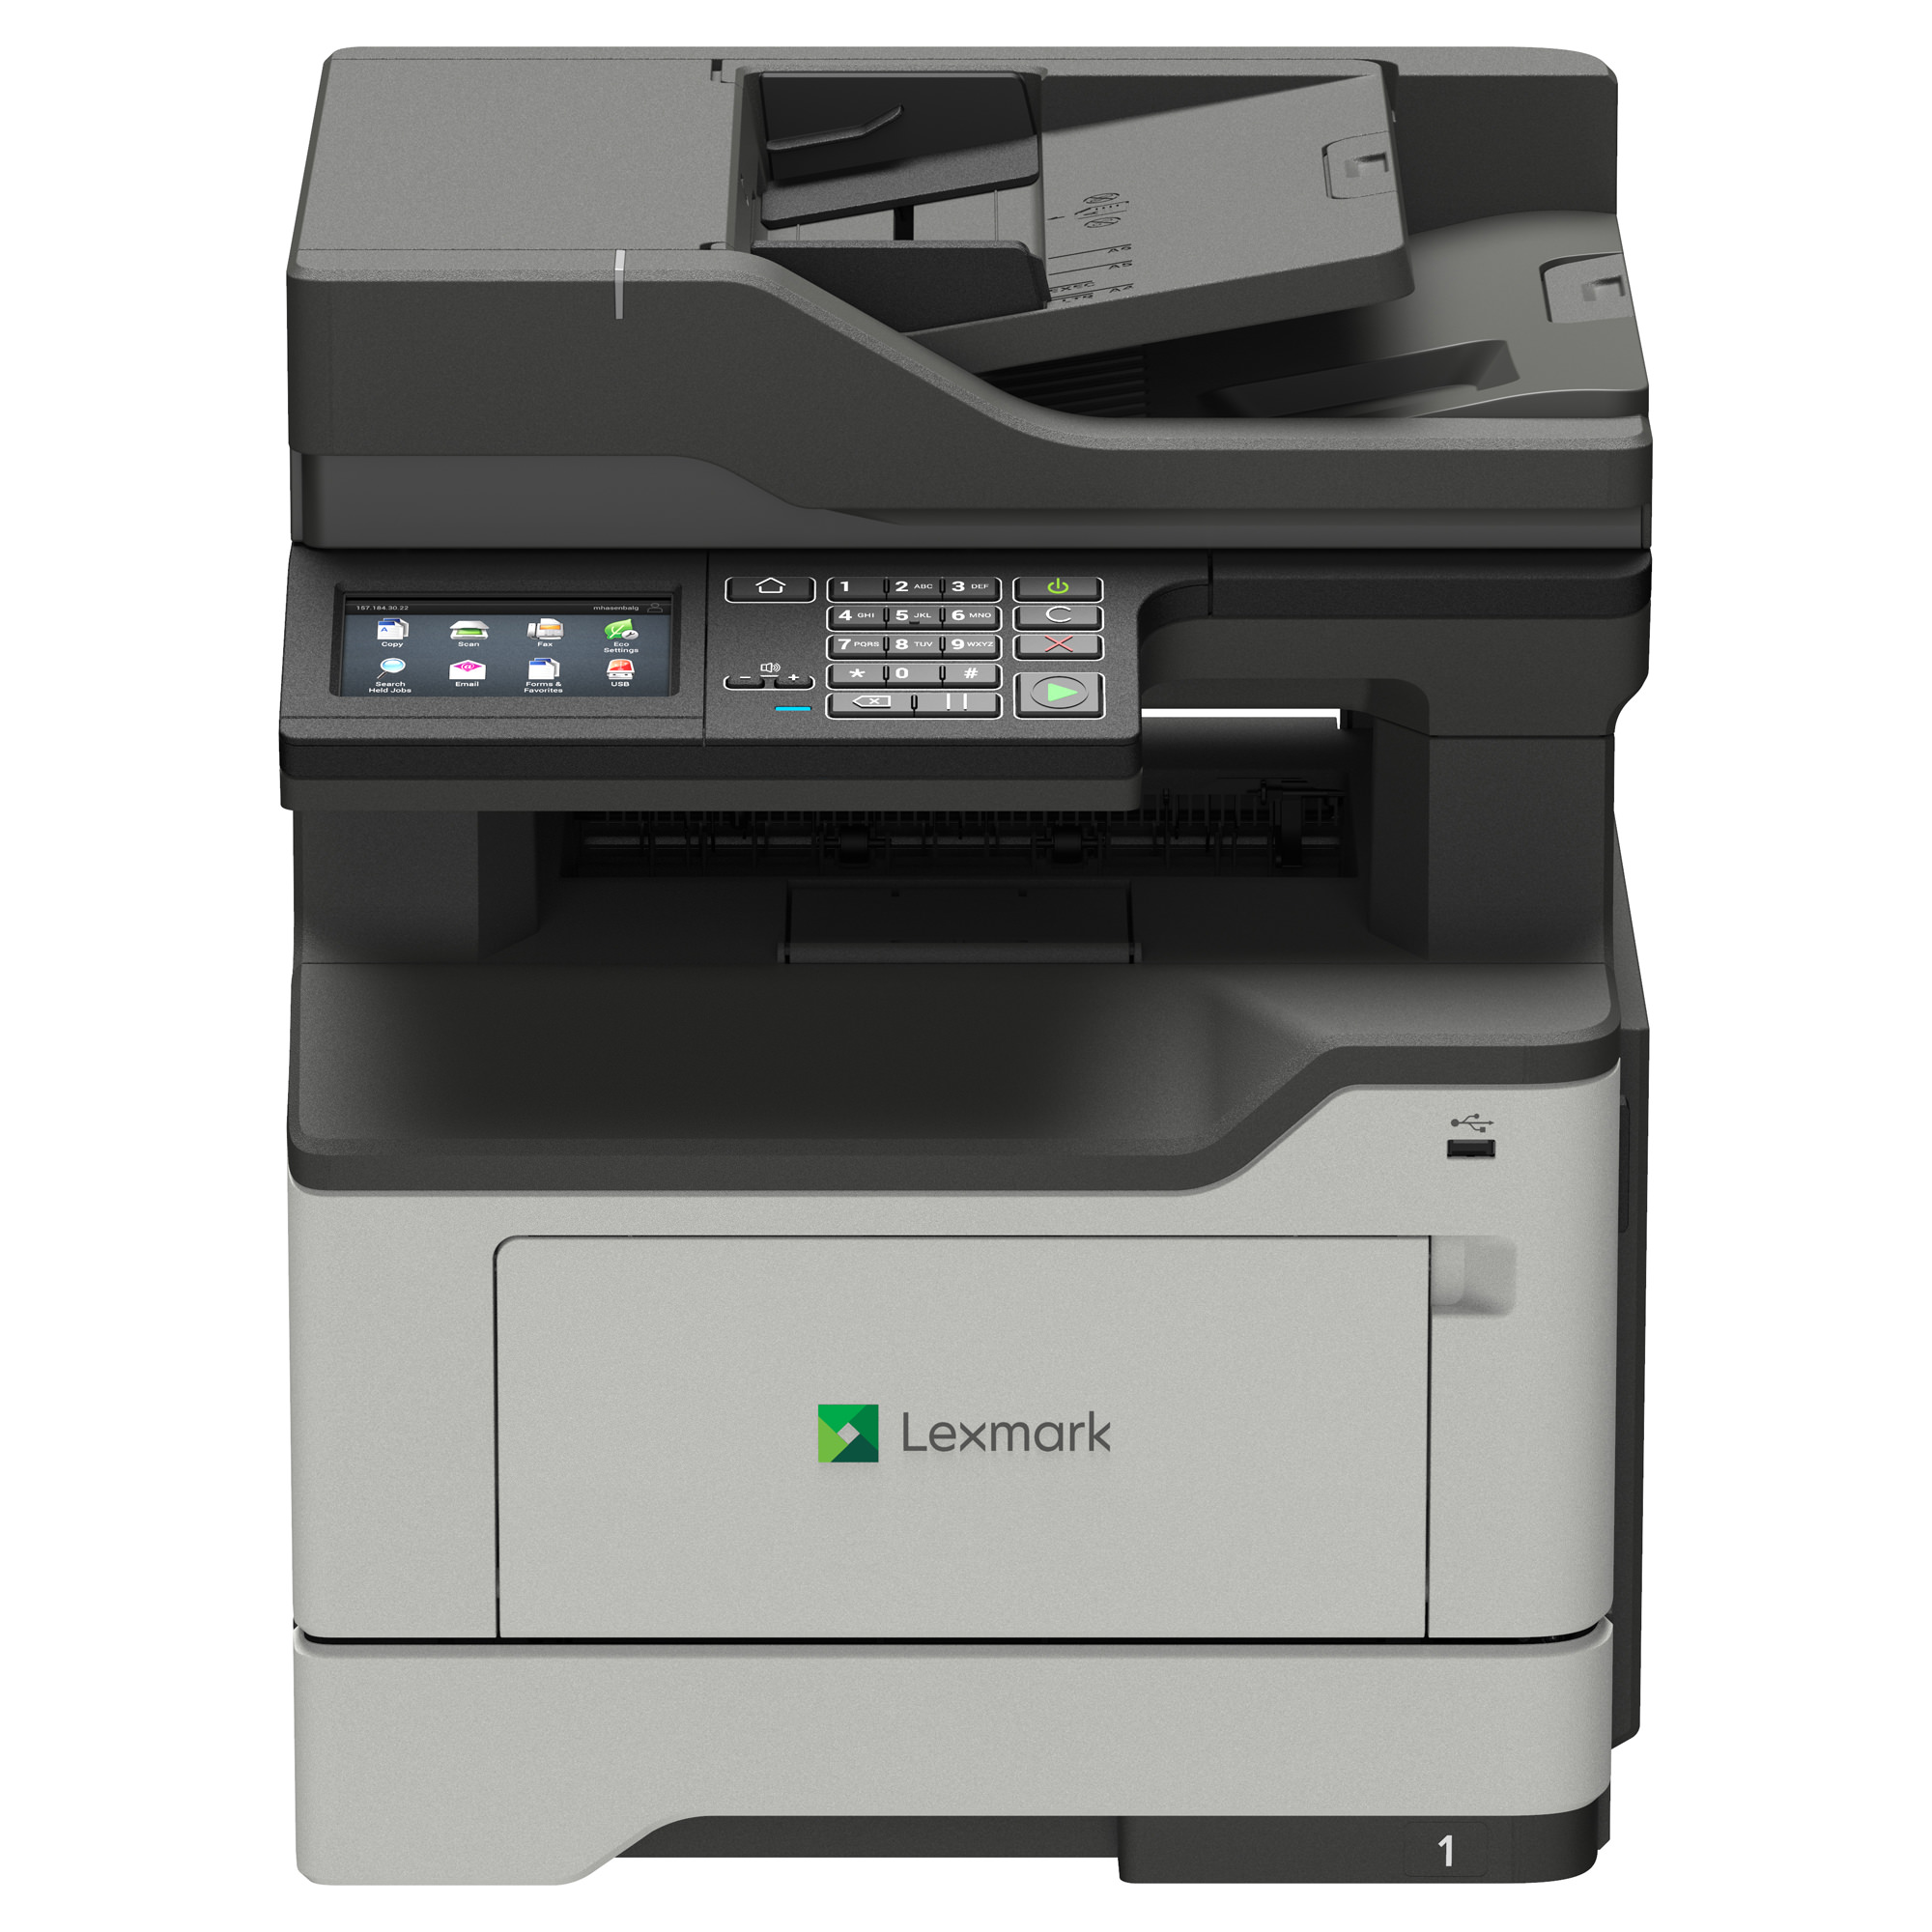 Lexmark MX421ade Mono Multifunction Laser Printer - Copy, Fax, Scan